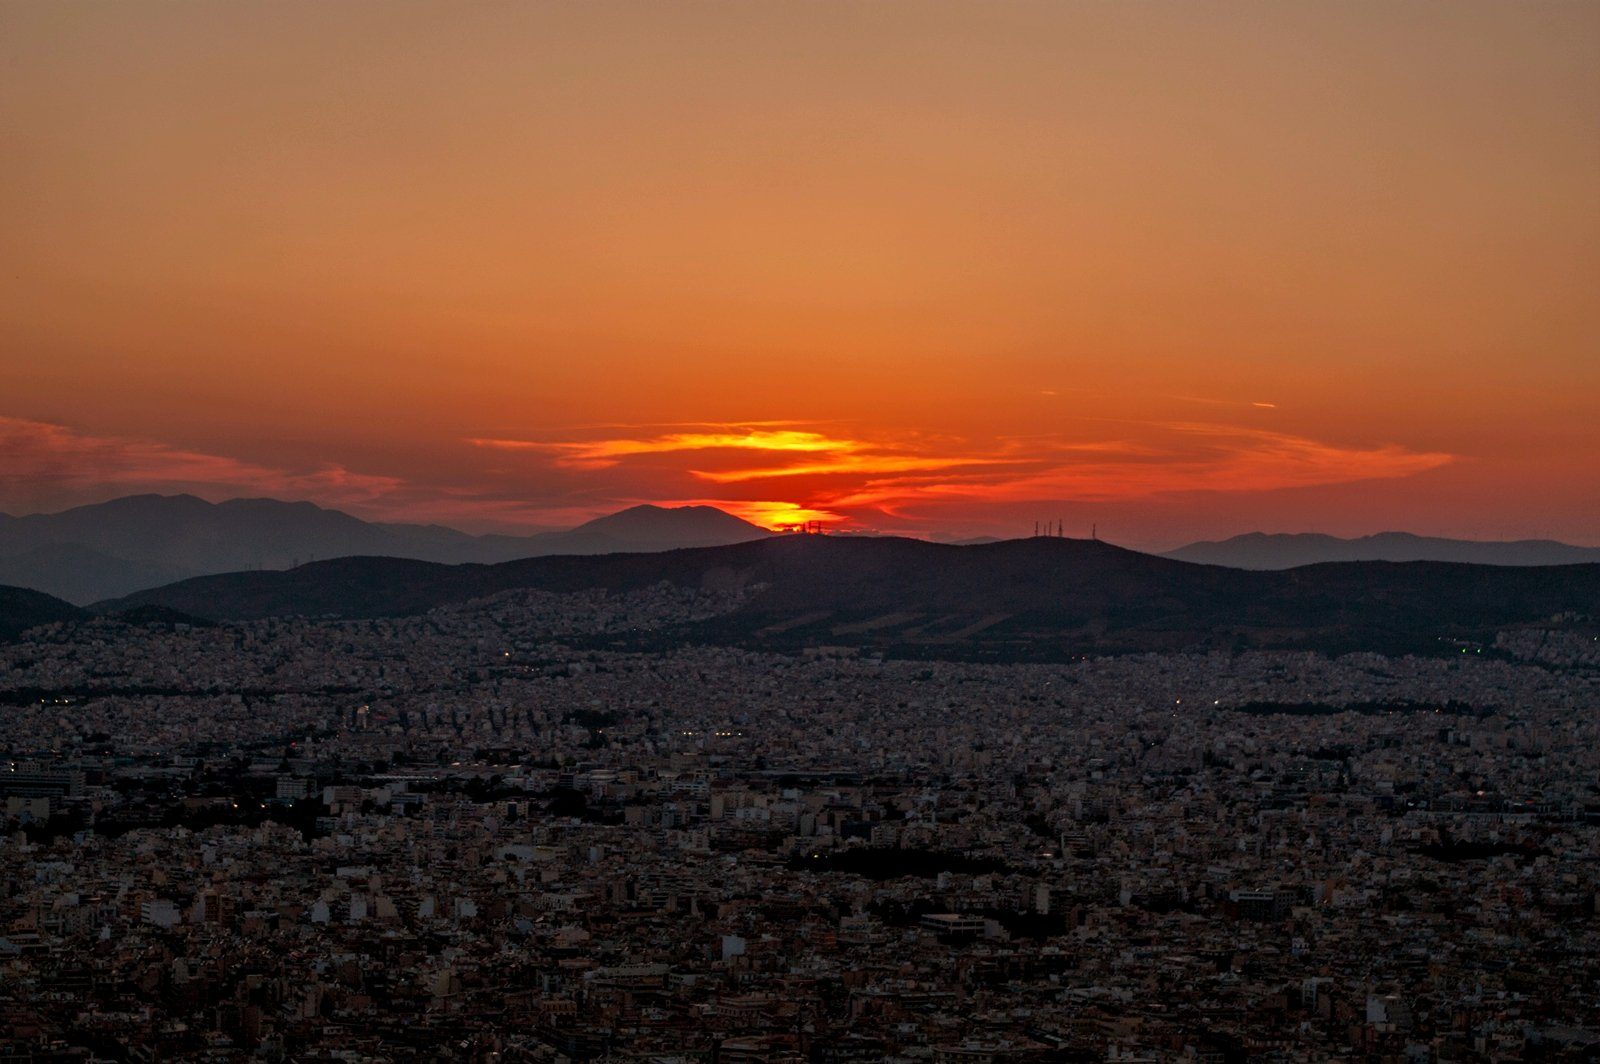 How to see the sunset from Mount Lycabettus in Athens